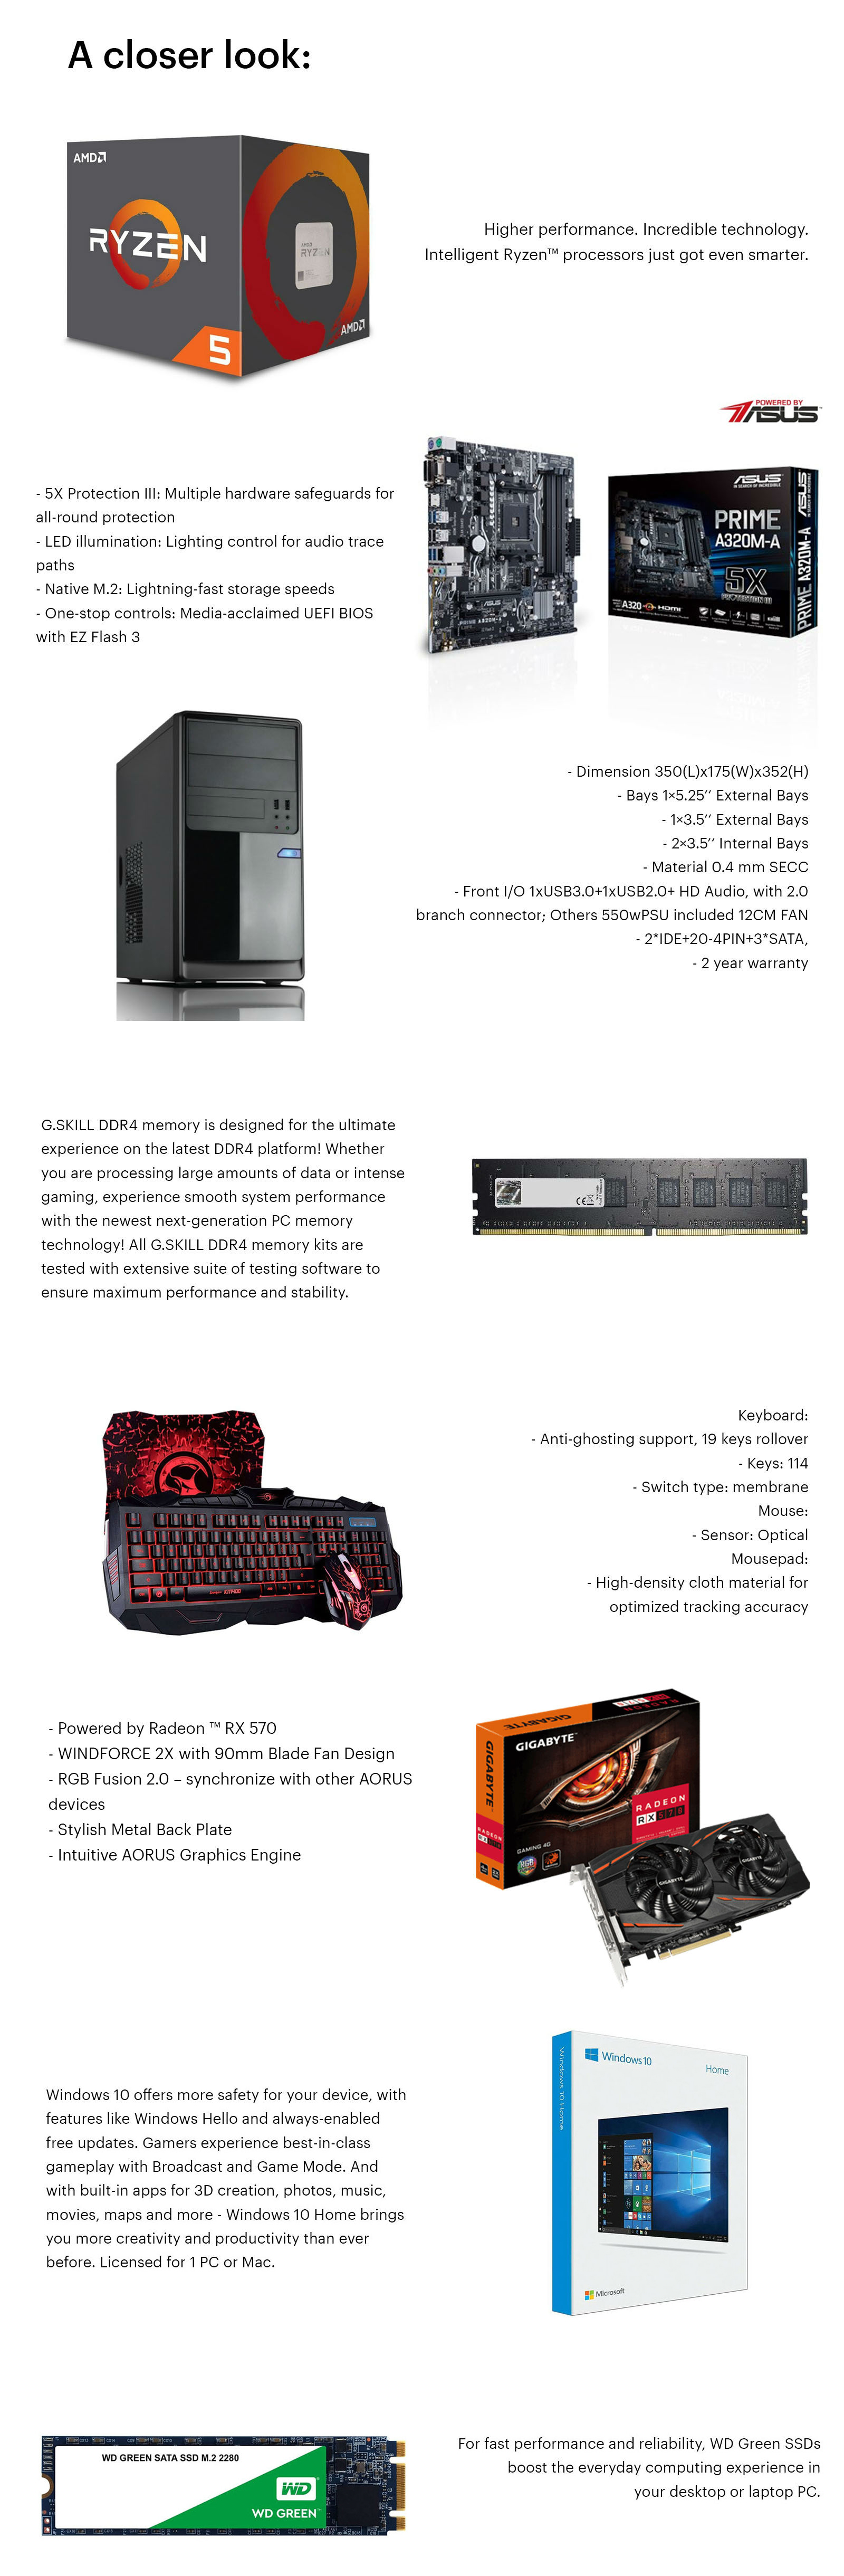 Umart Pluto Ryzen5 RX 570 Gaming PC 2019 V2 with Keyboard and Mouse Combo